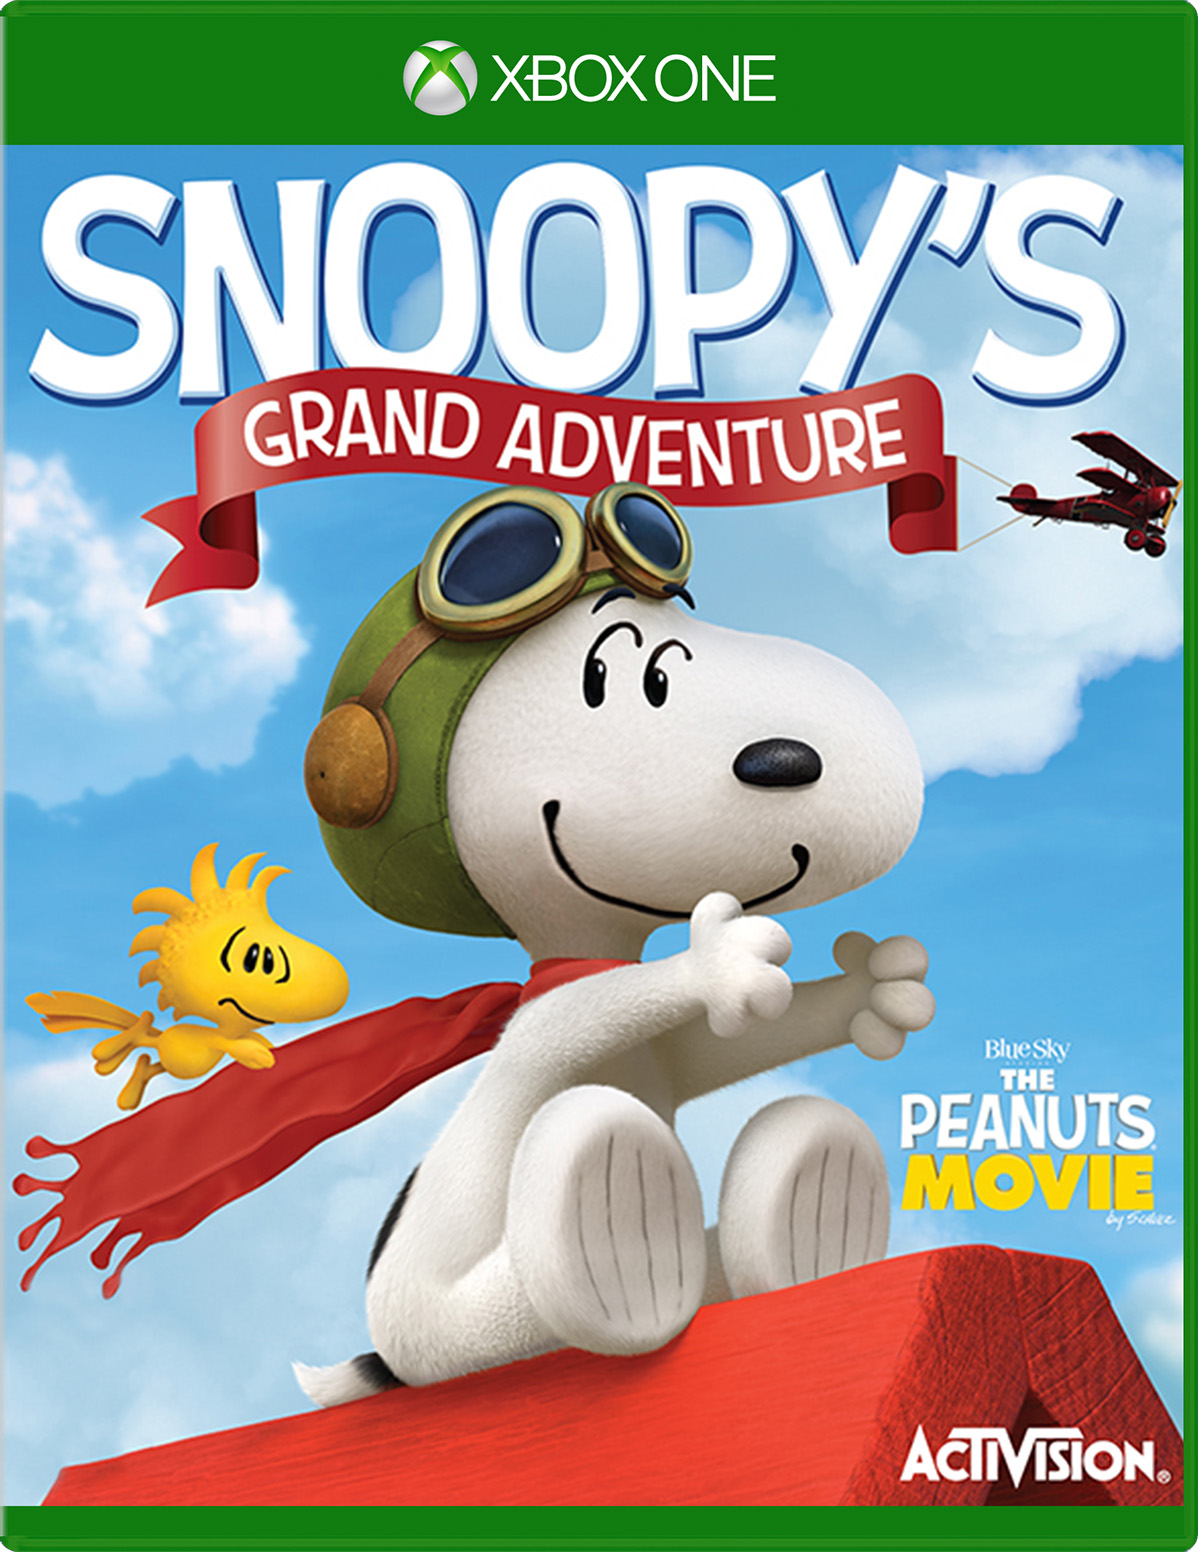 The Peanuts Movie: Snoopy's Grand Adventure for Xbox One